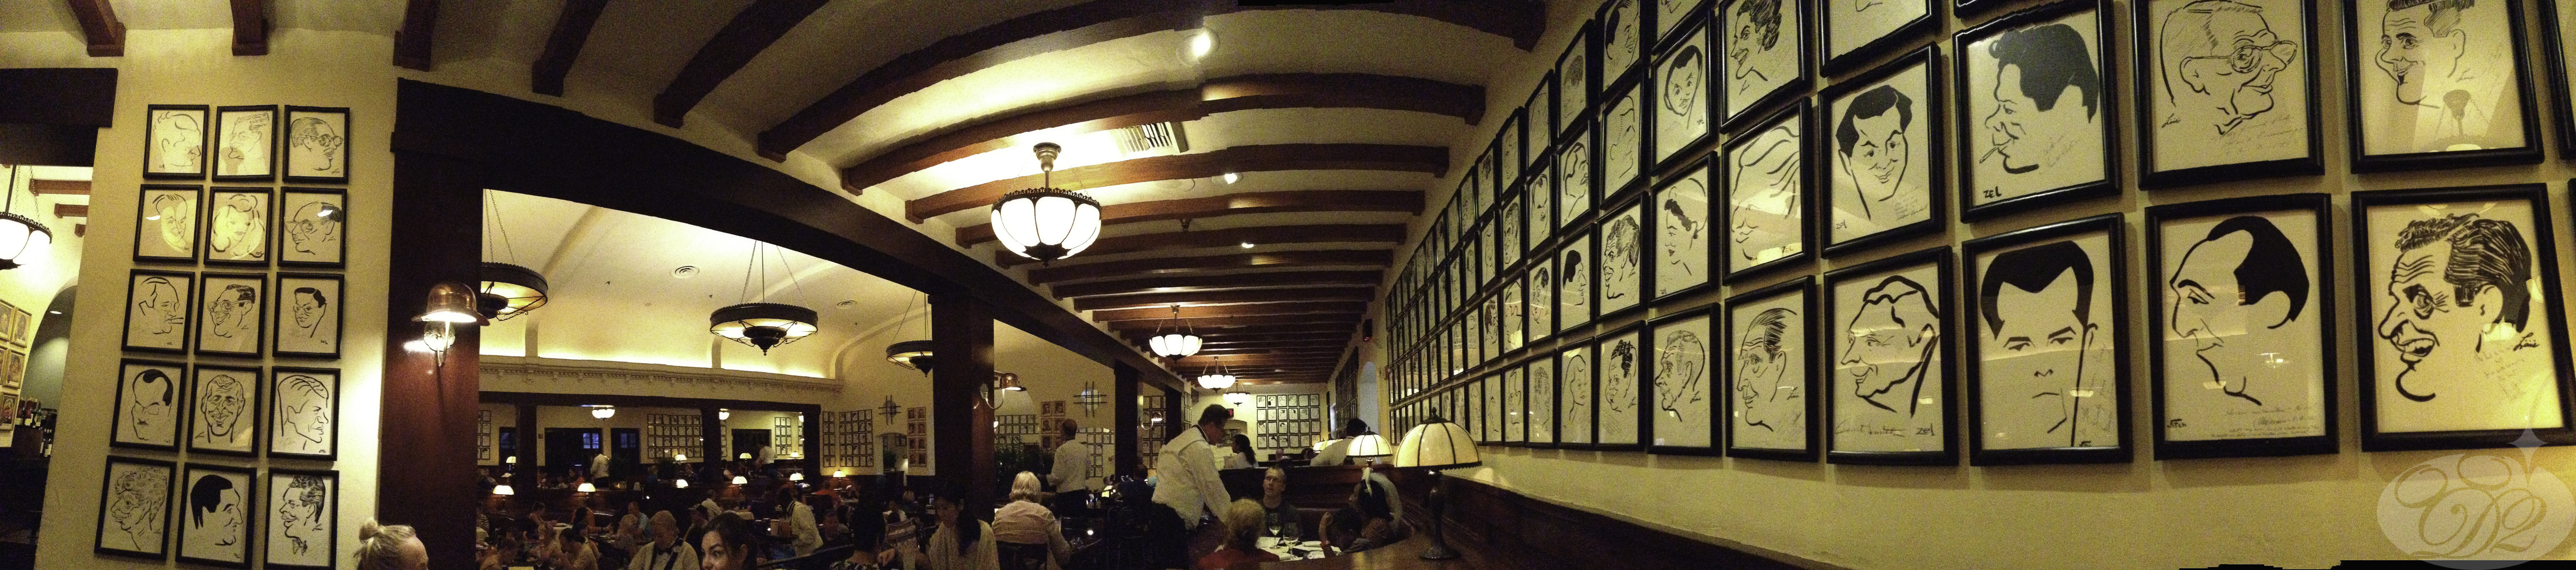 Full-Service Dining at the WDW Hollywood Brown Derby